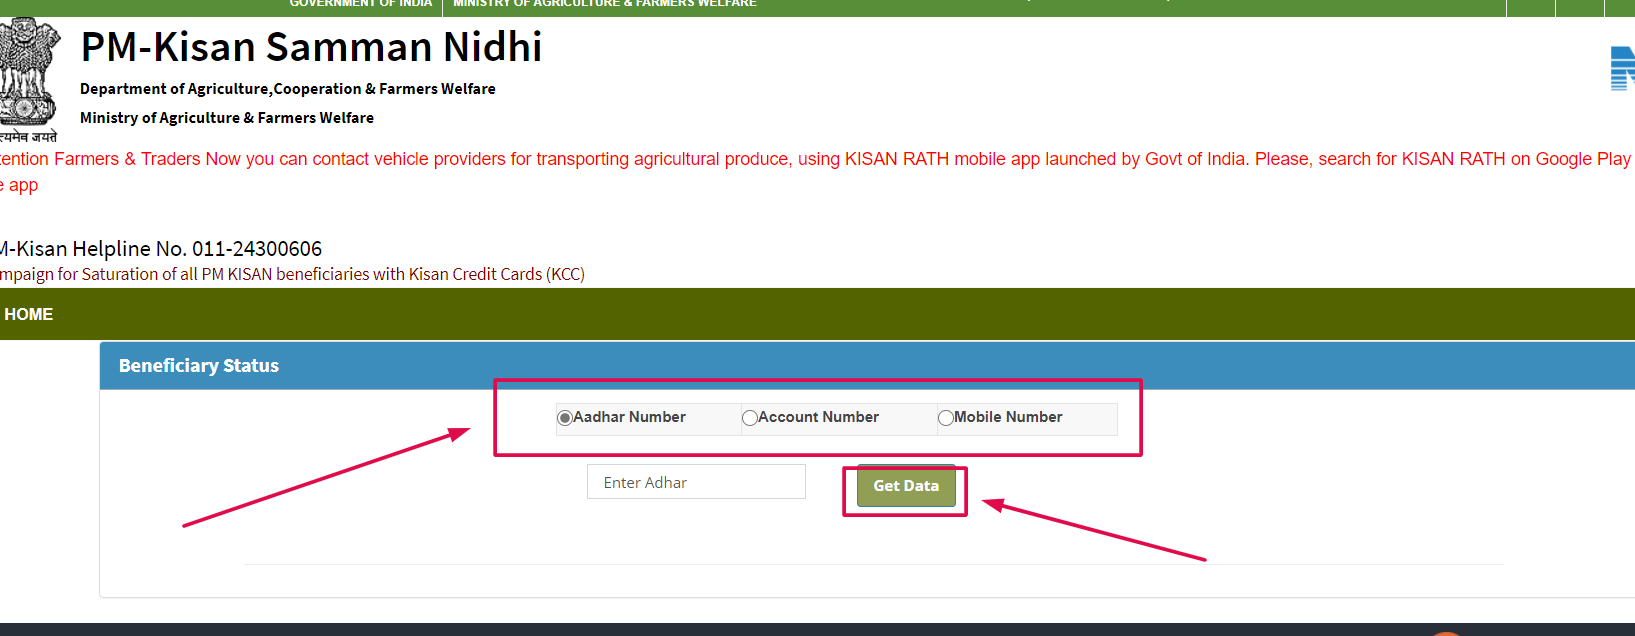 HOW-TO-CHECK-PM-KISAN-YOJNA-PAYMENT-STATUS-ONLINE